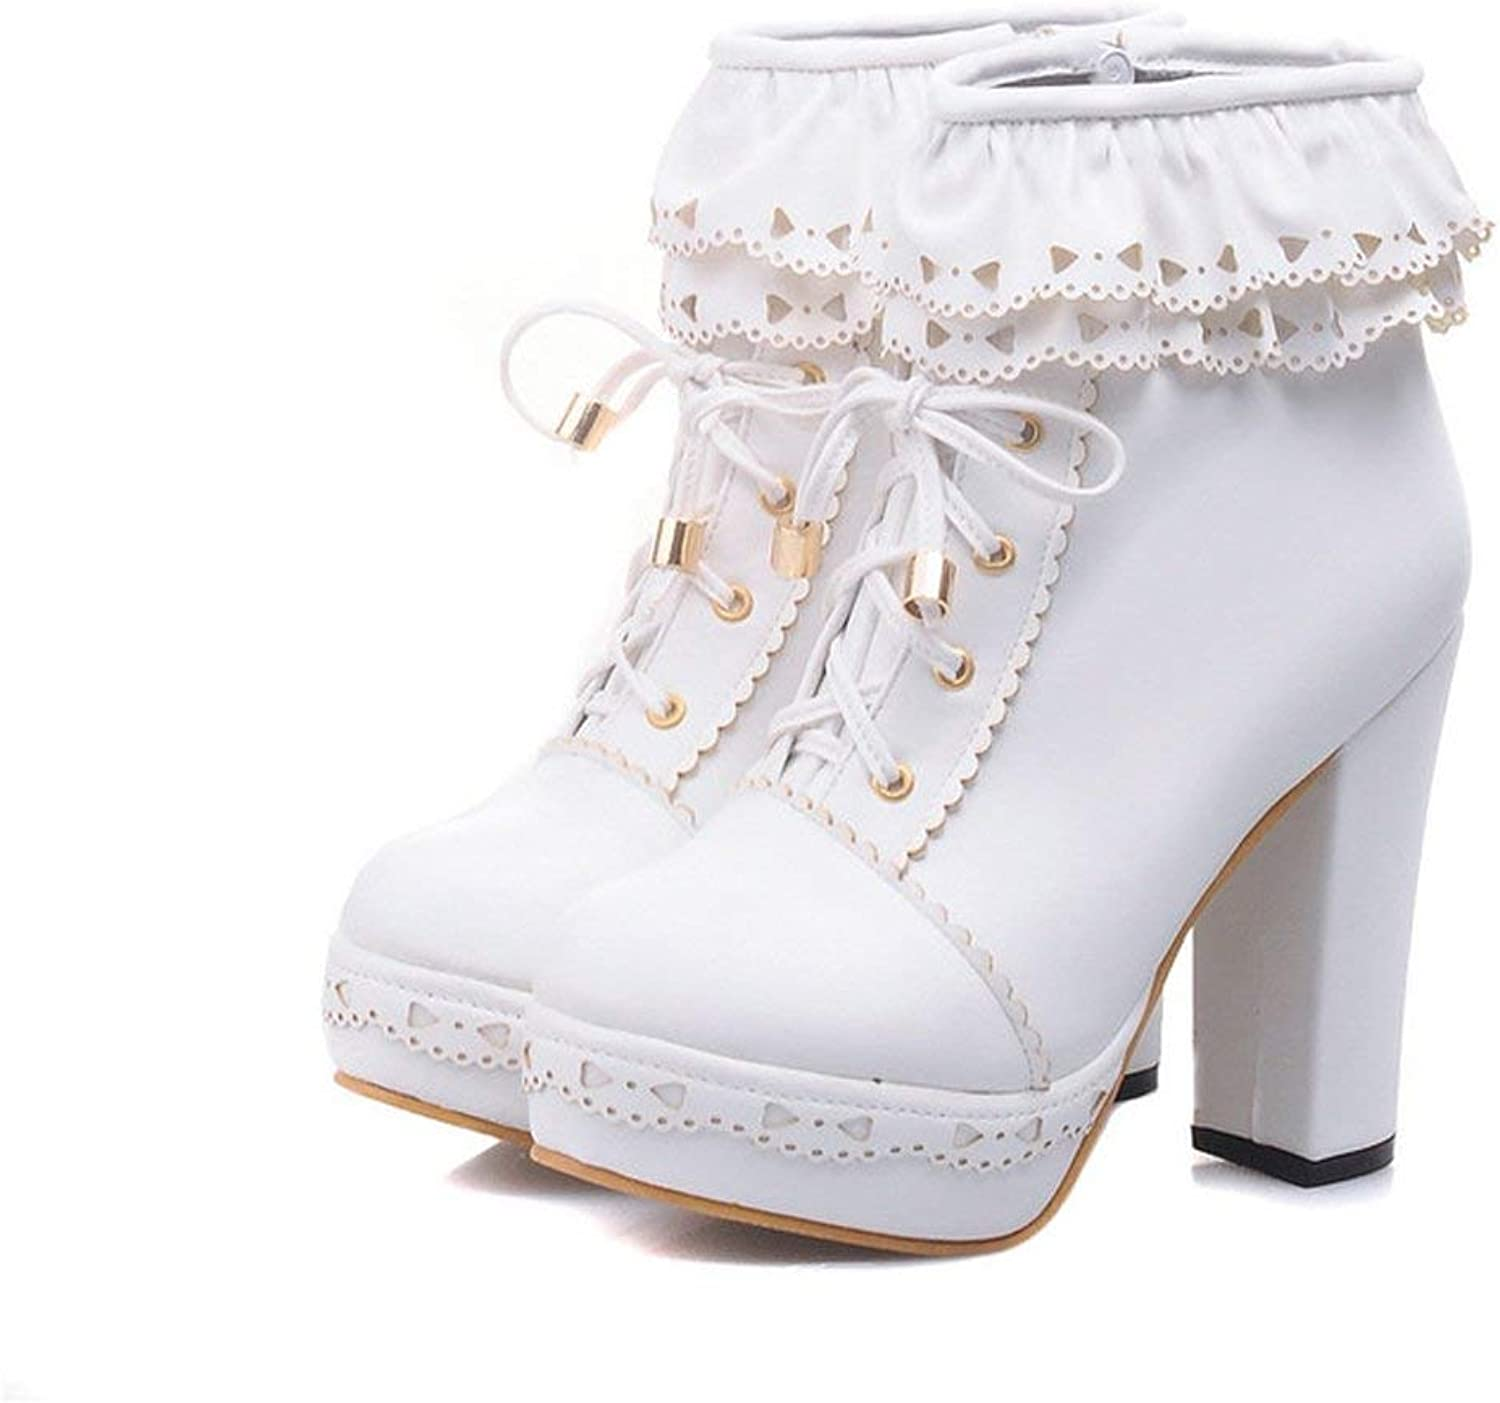 Edv0d2v266 Women's Lace Up Platform High Heel Ankle Boots Sweet Lolita shoes PU Leather Ruffle Booties